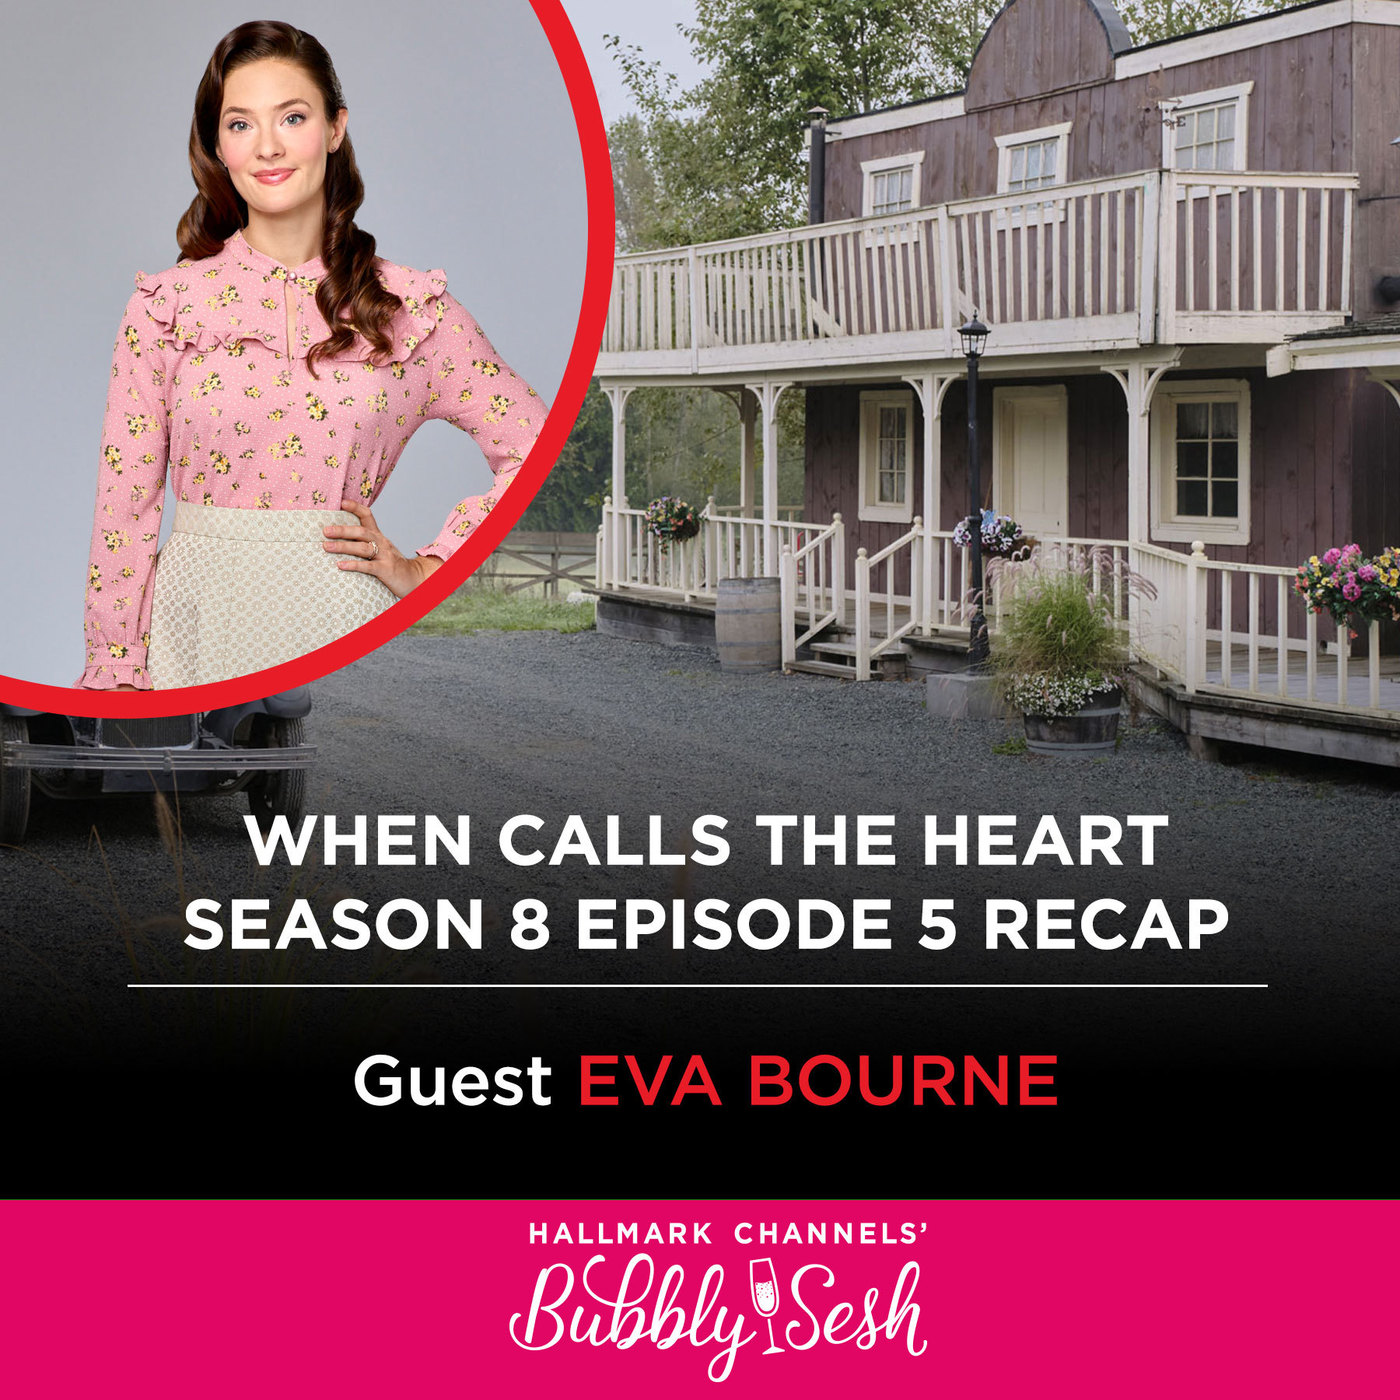 When Calls the Heart S8 Ep 5 Recap with Guest Eva Bourne